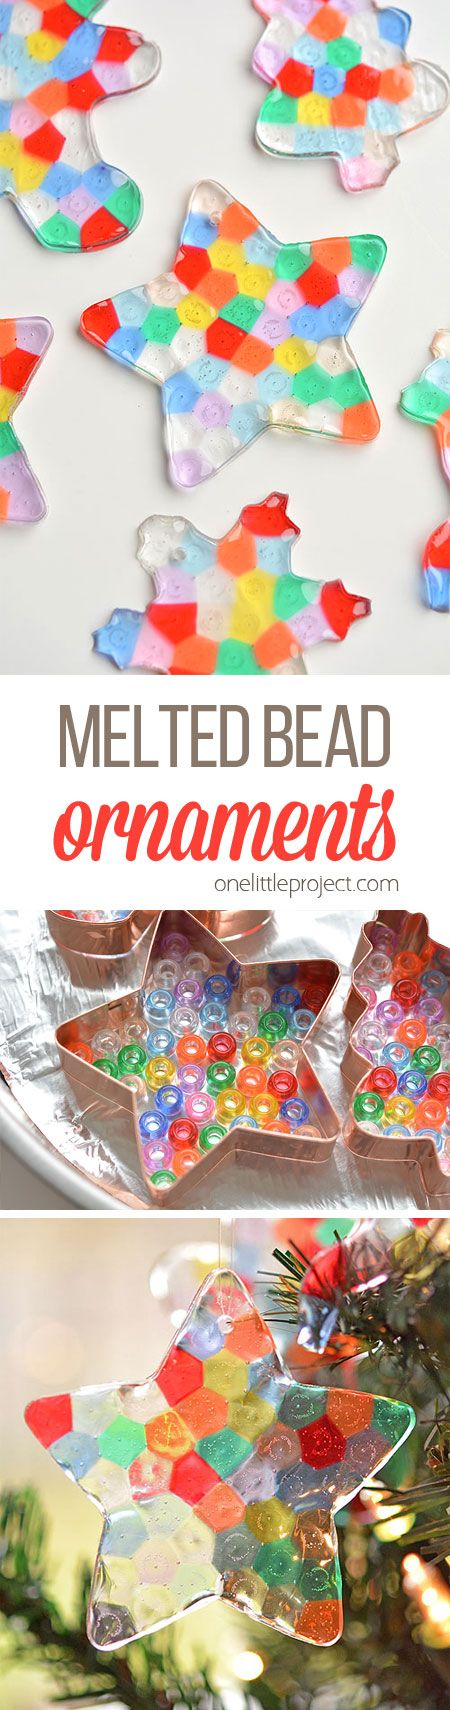 These melted bead ornaments are SO BEAUTIFUL! And they're so easy to make with pony beads! You can hang them on the Christmas tree, or use suction cup hooks on the window to turn them into sun catchers.: